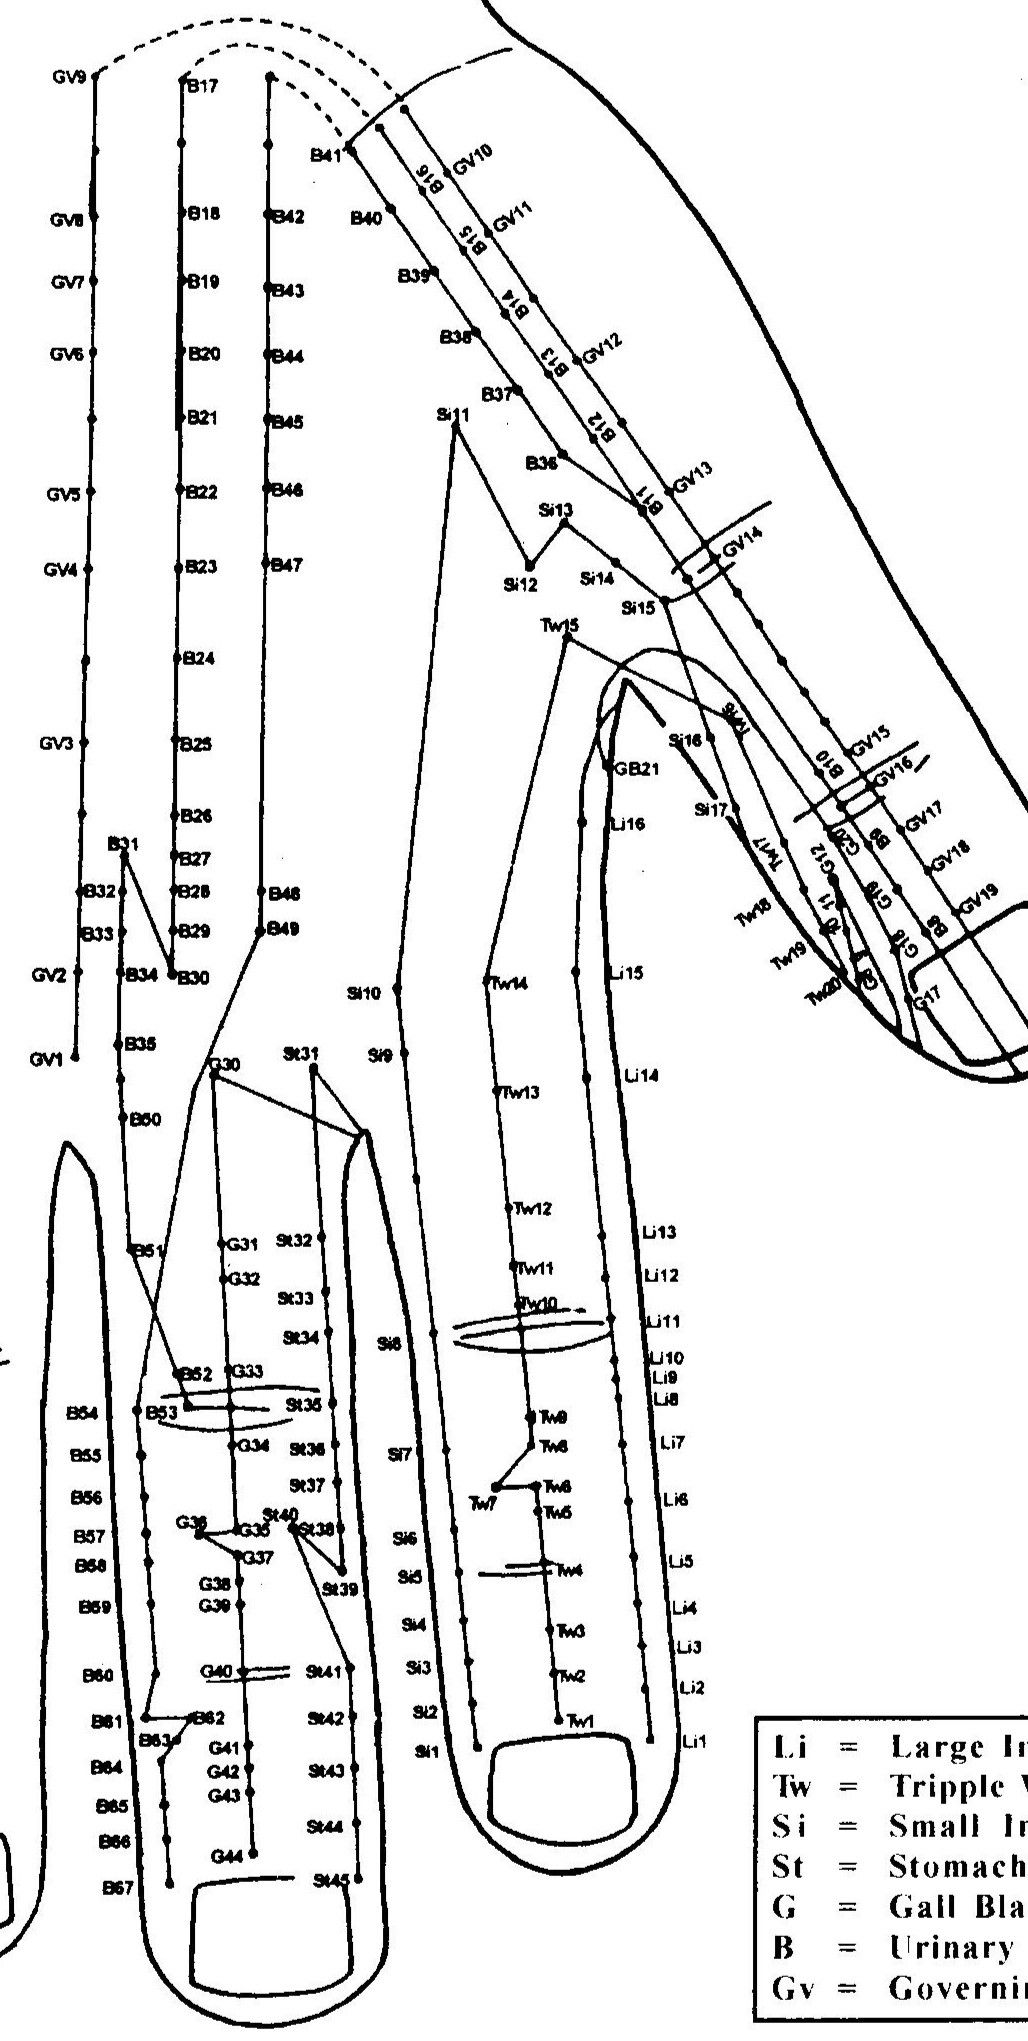 Pin On Advance Acupuncture Acupressure Training And